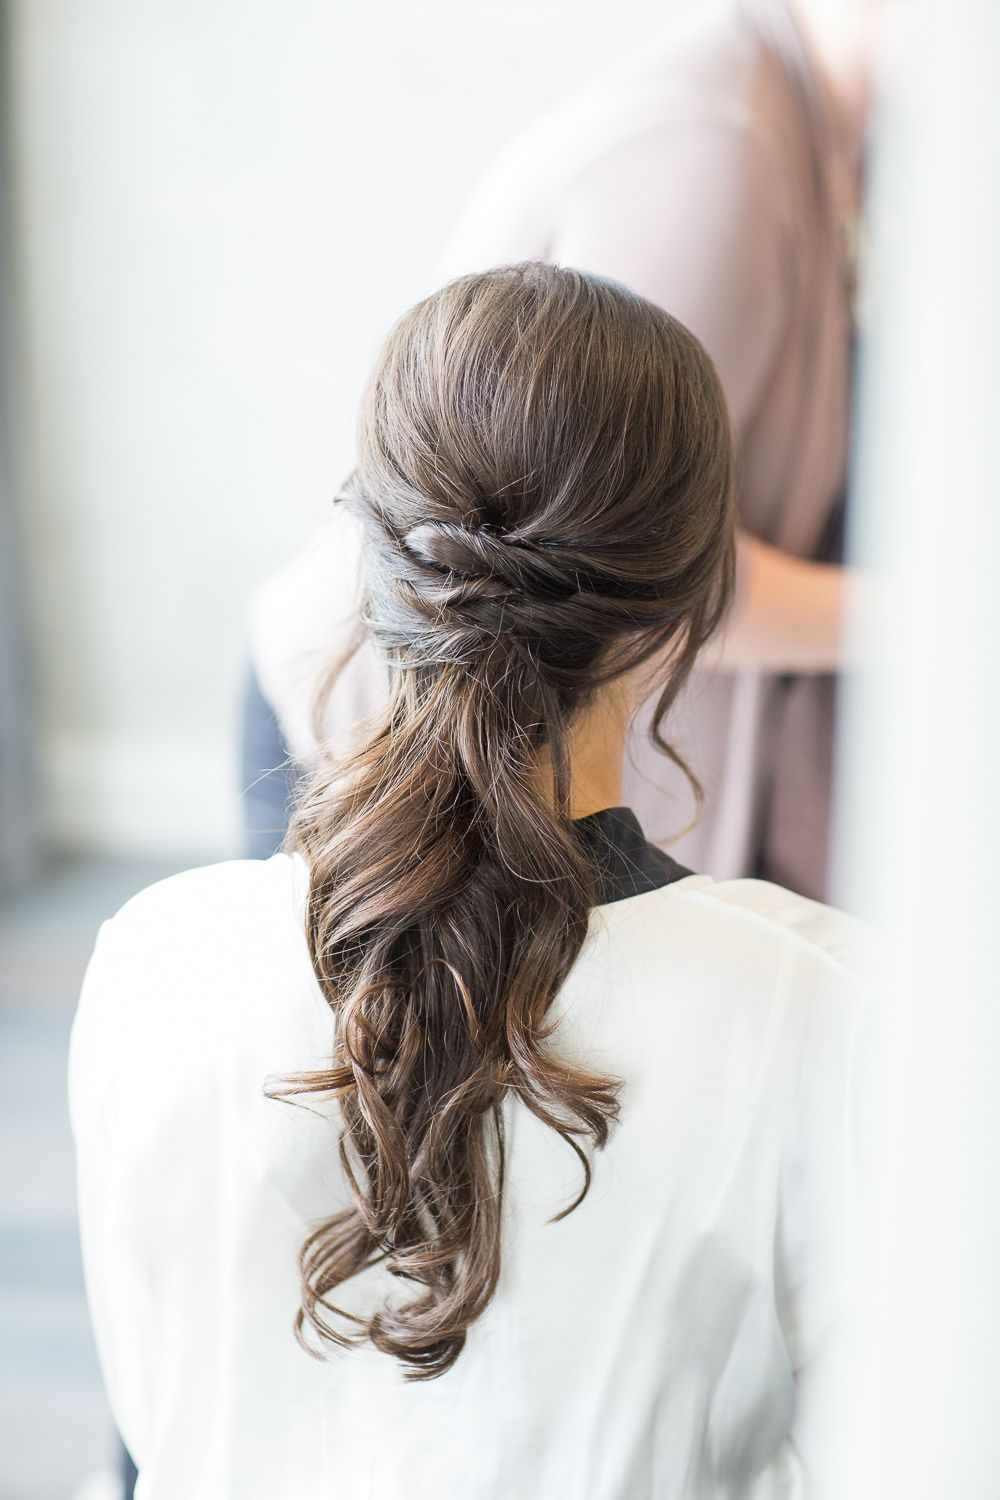 The best hairstyles for a romantic date night night hairstyles